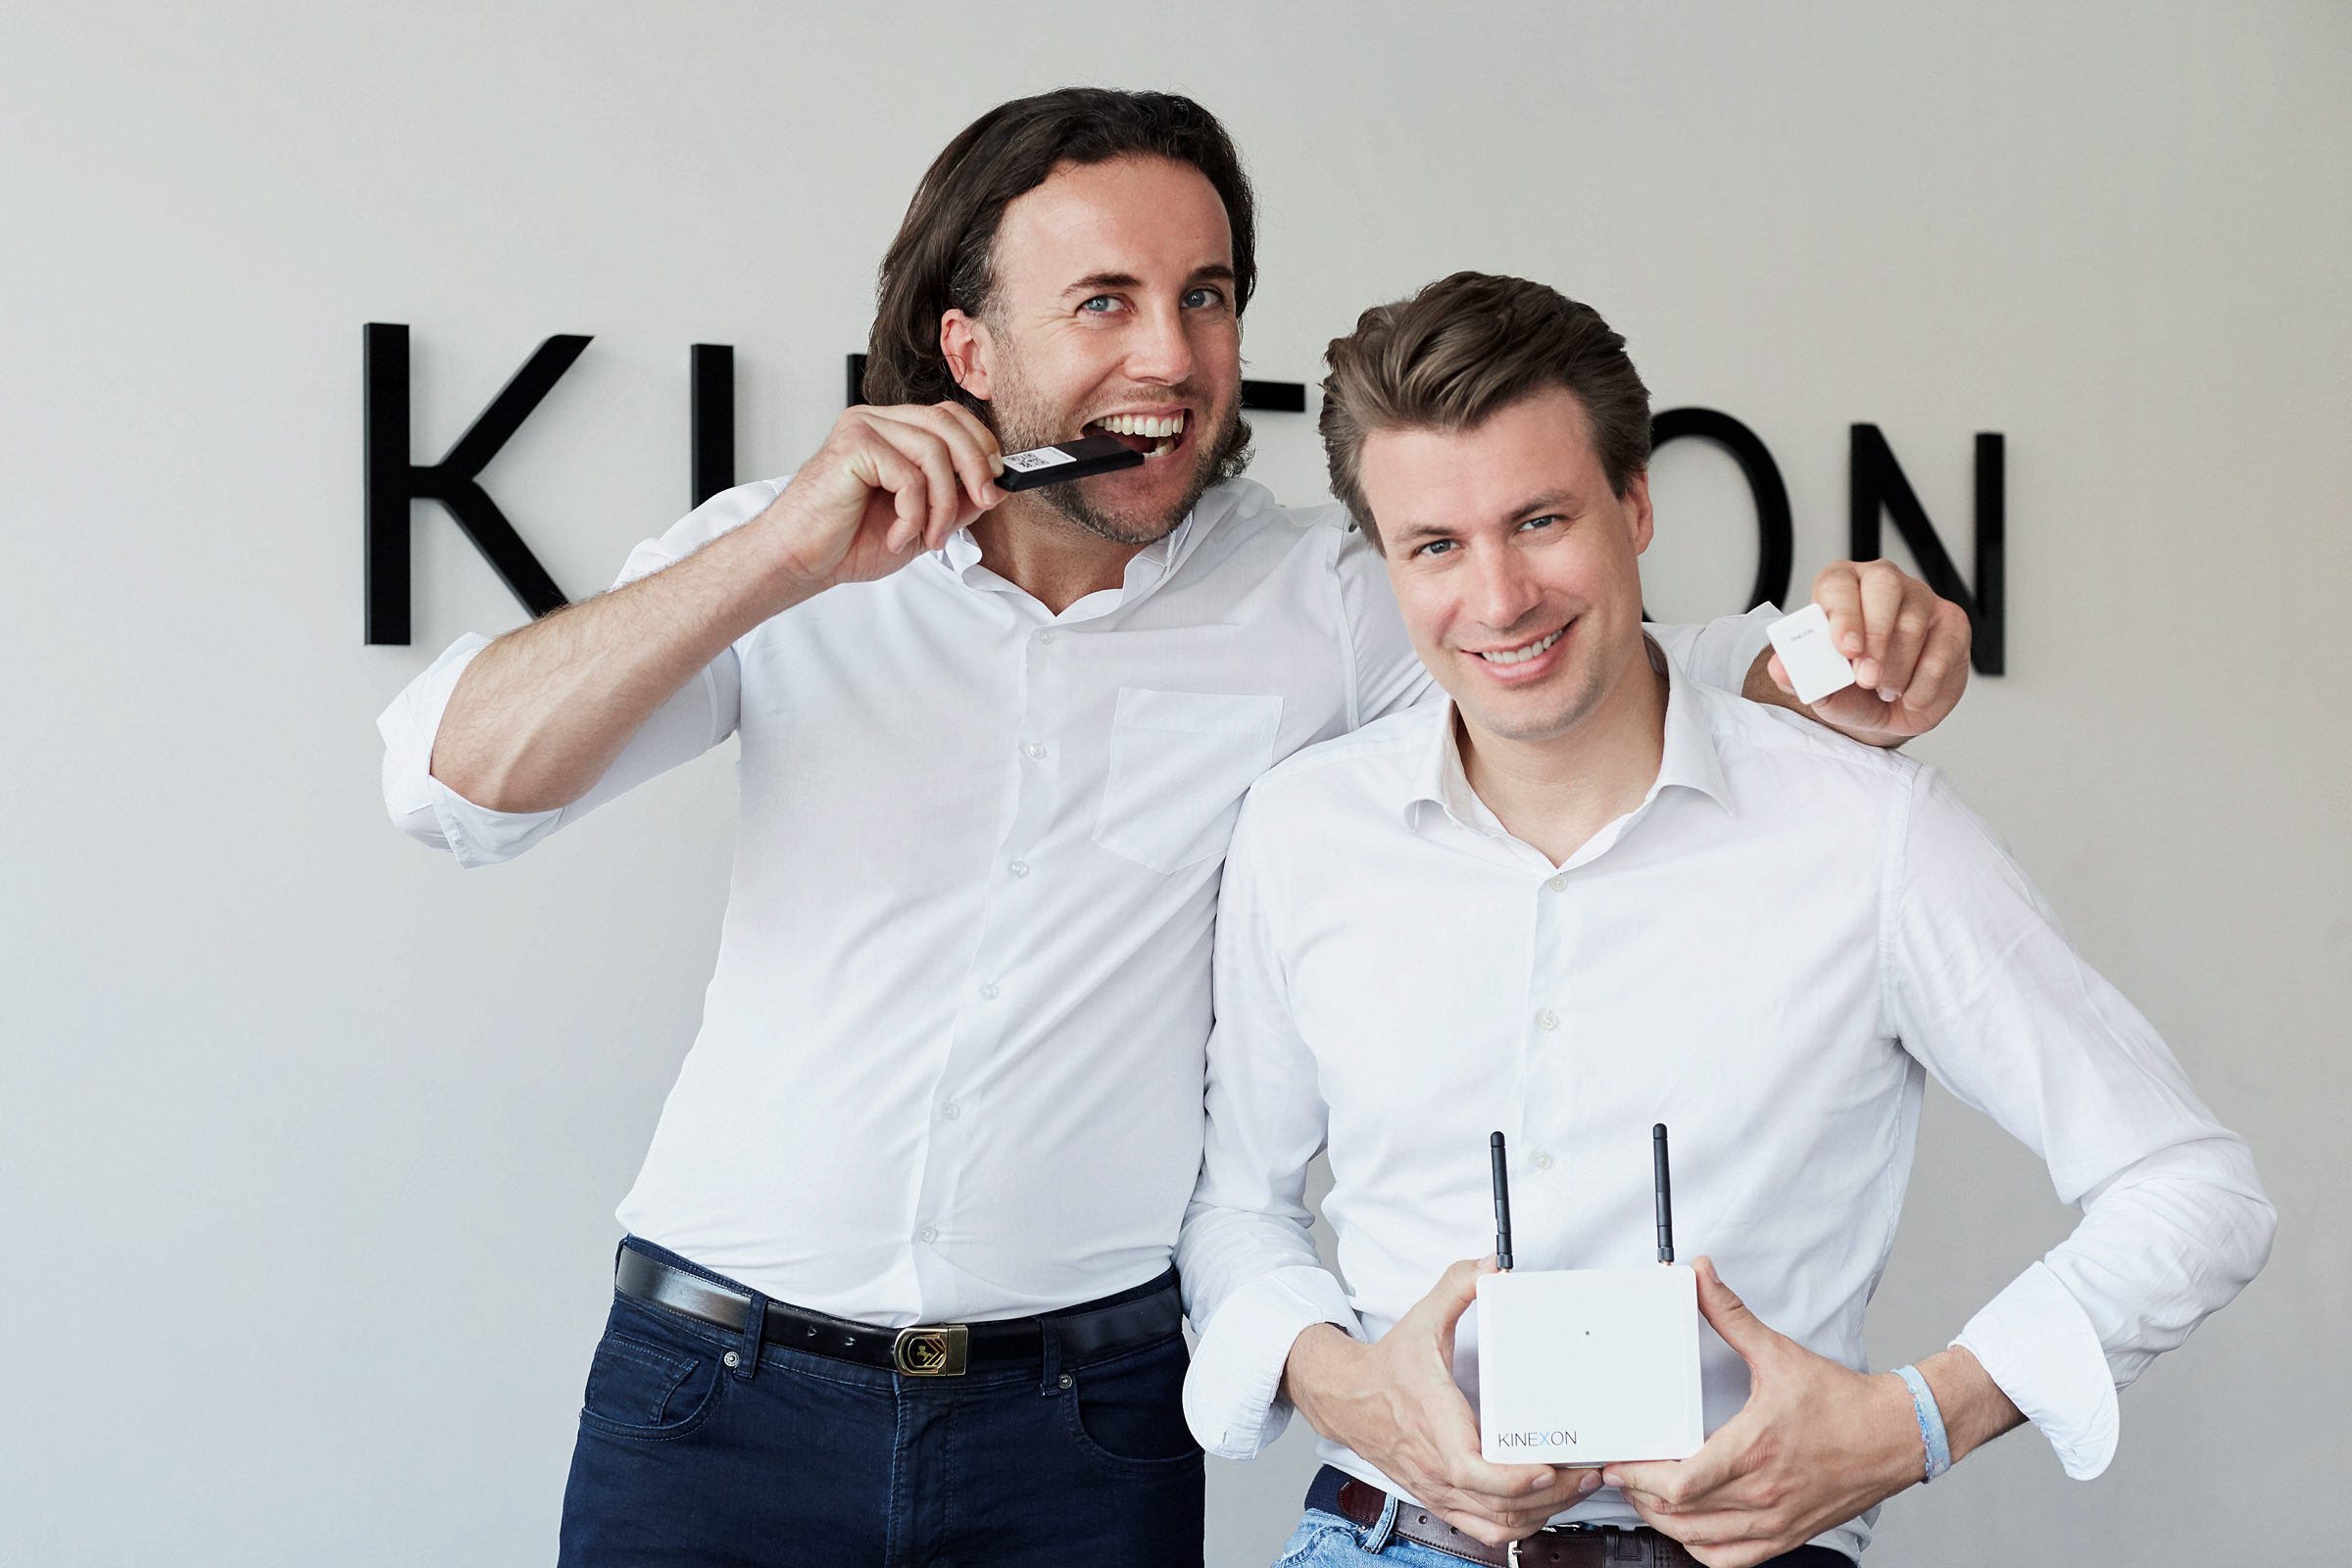 Alexander Huettenbrink and Oliver Trinchera with the anchor in front of the KINEXON logo